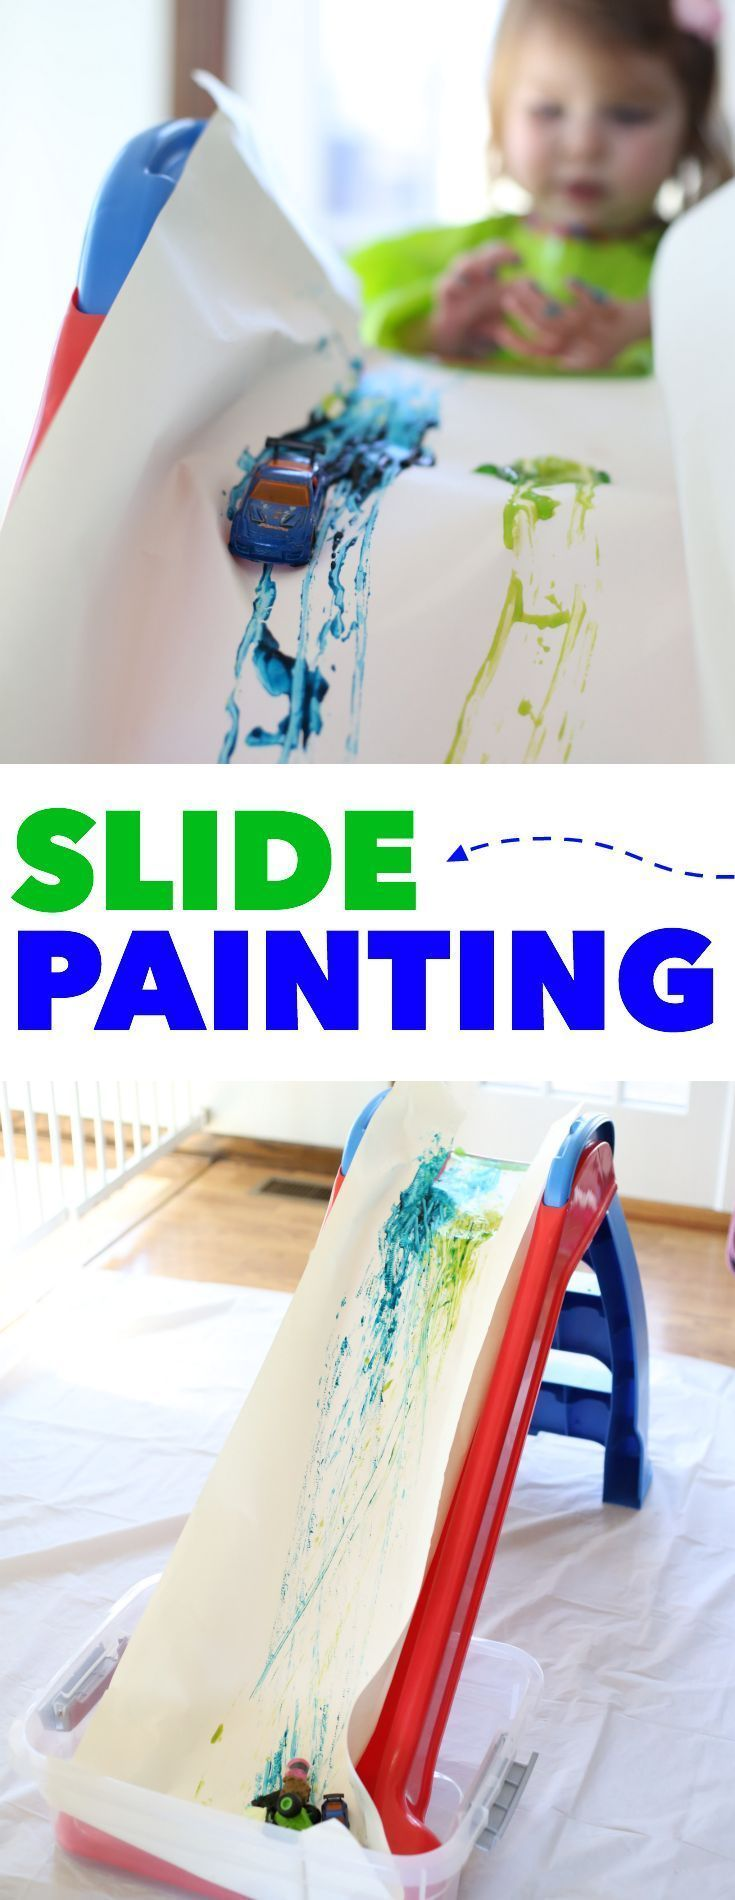 Slide Painting:  A super fun indoor or outdoor process art activity for toddlers or preschoolers!  Use cars, balls, or anything that rolls!